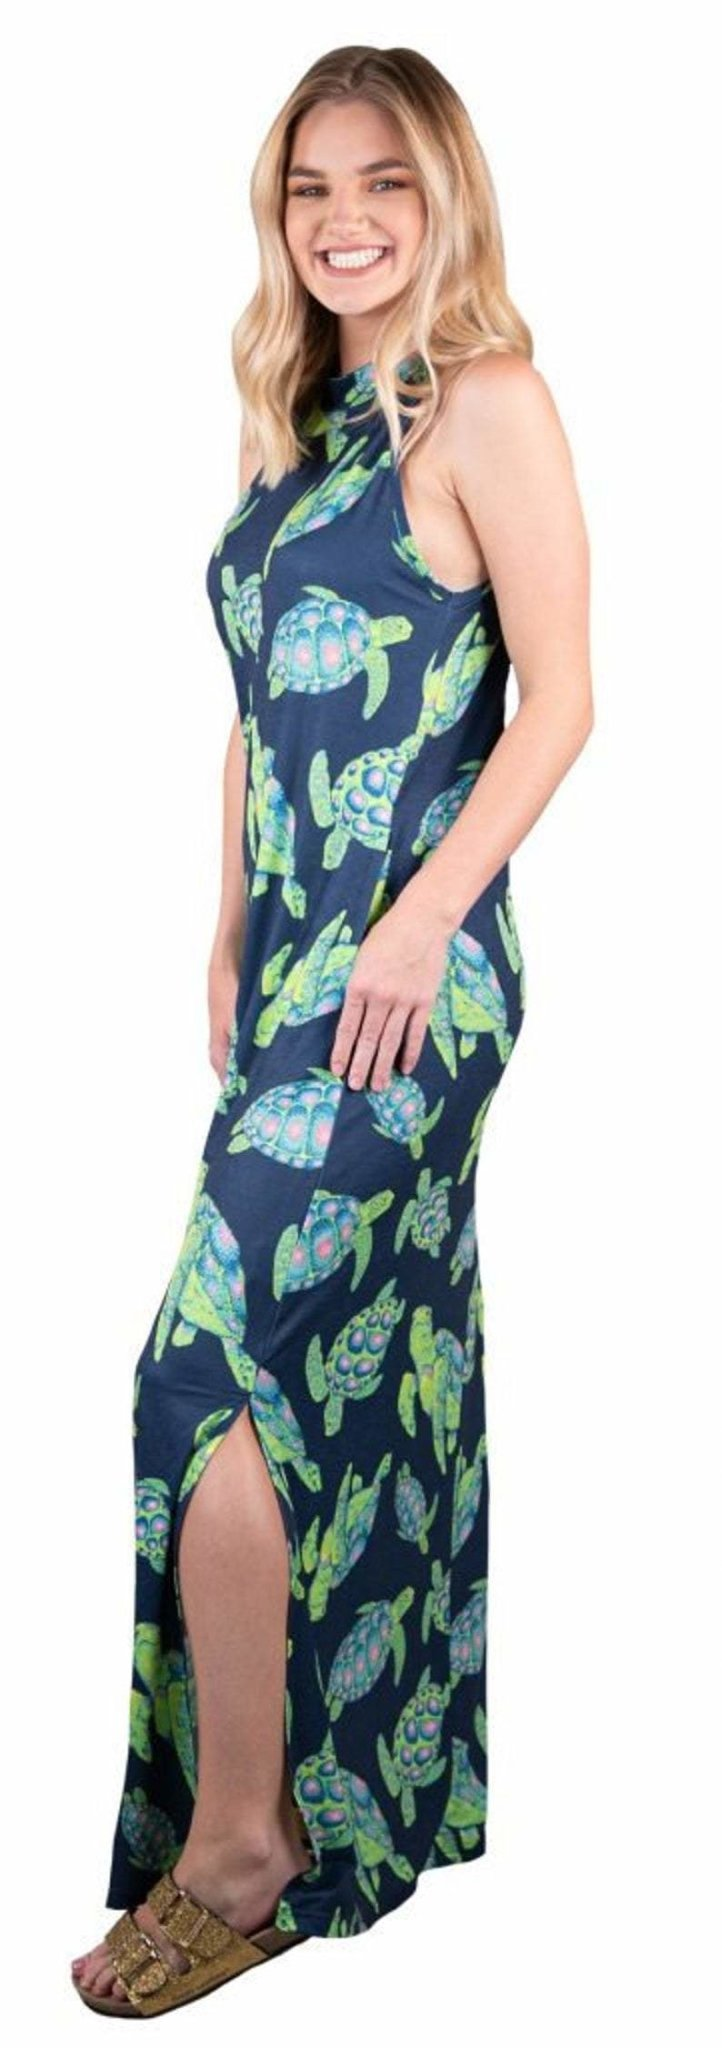 MAXI DRESS - TURTLE PRINT - Molly's! A Chic and Unique Boutique